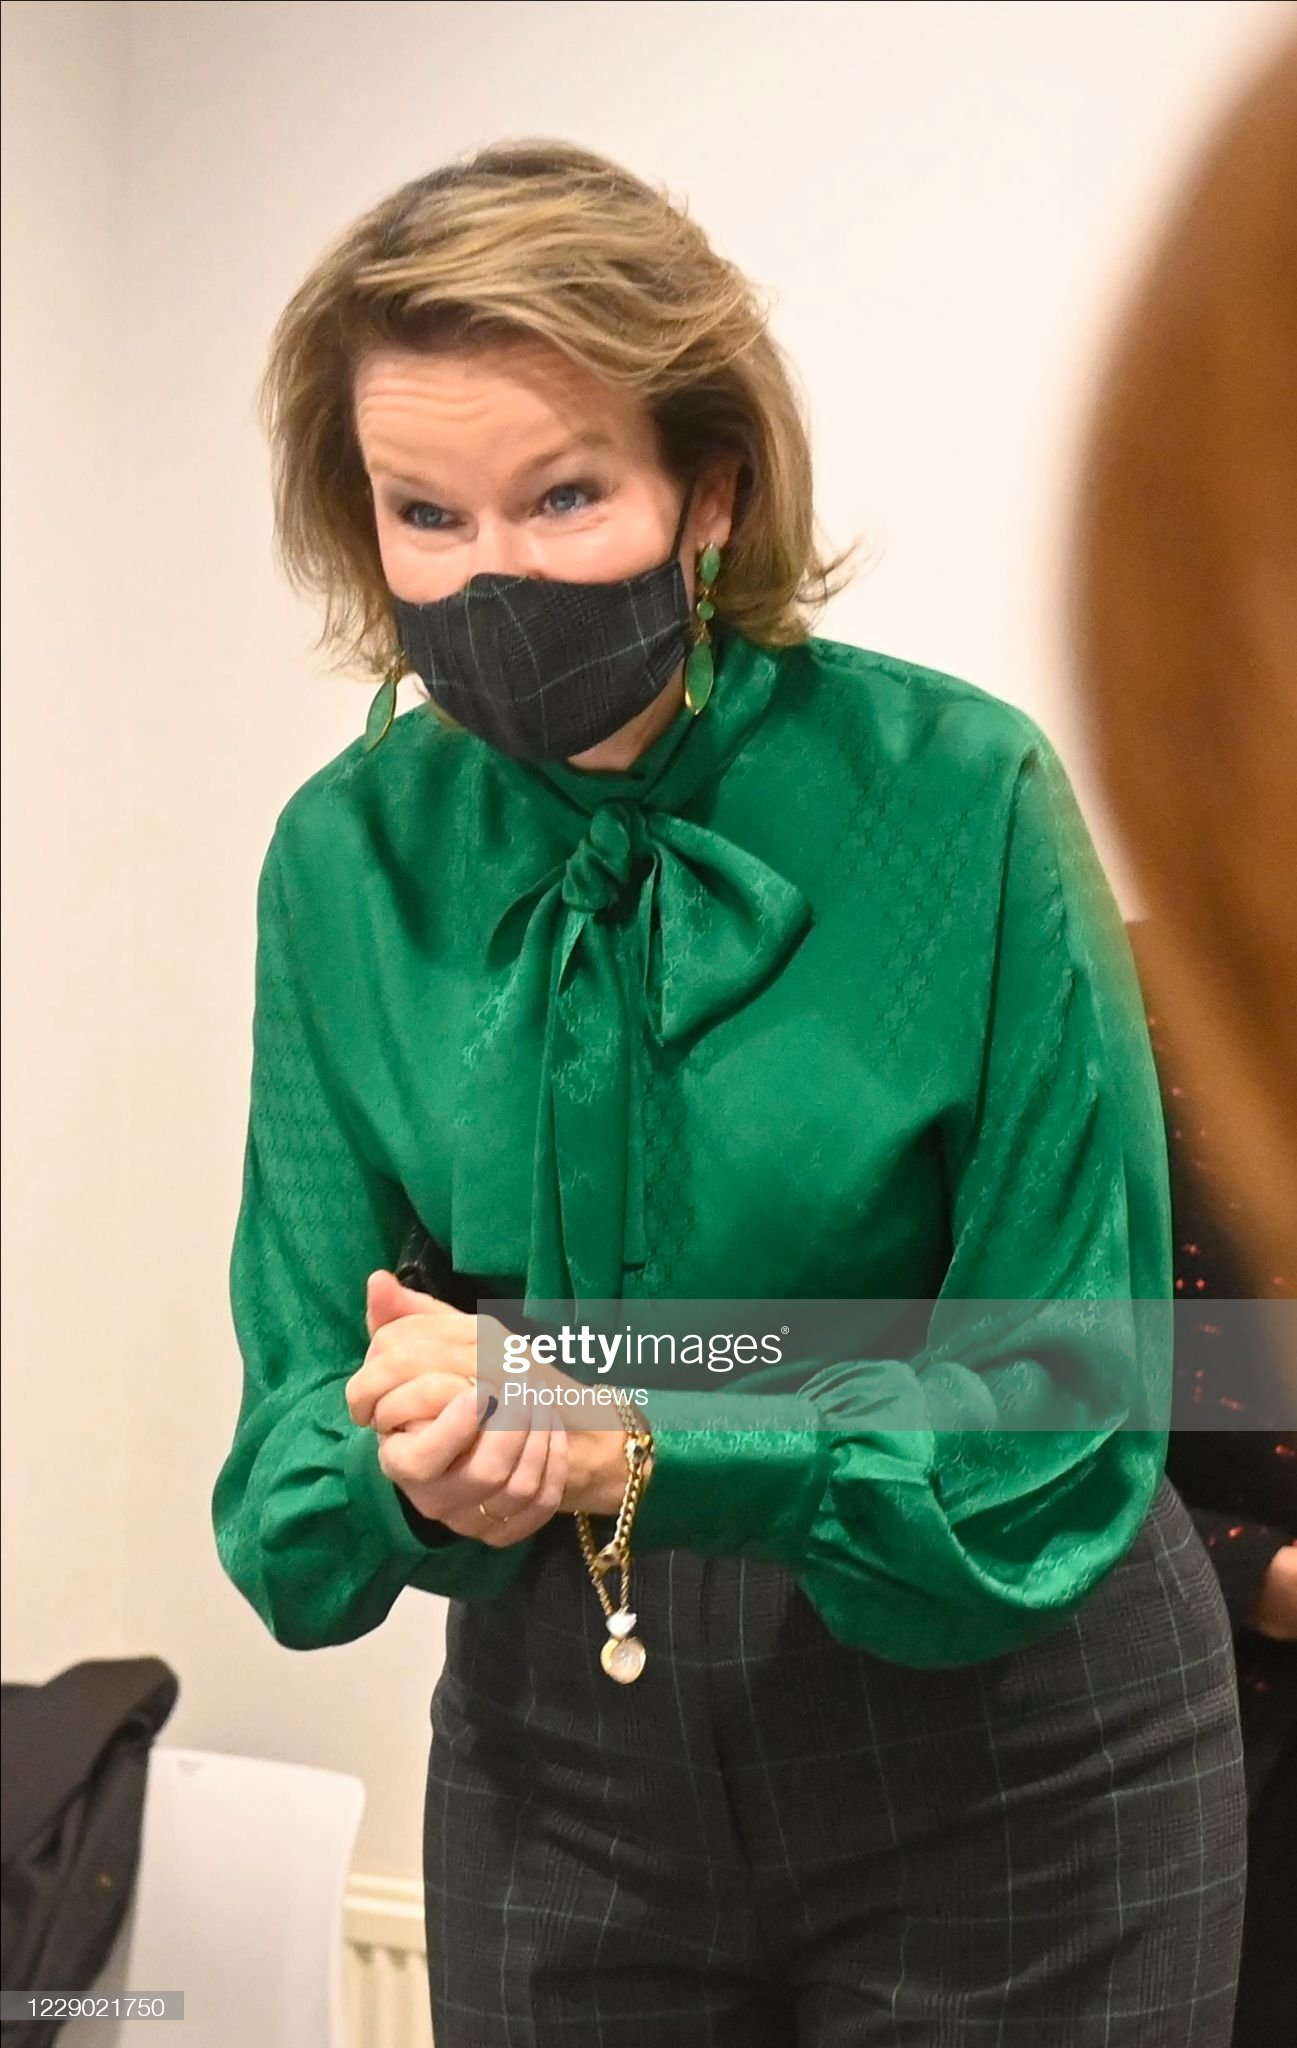 visit-of-queen-mathilde-to-danone-on-occasion-of-a-virtual-event-a-picture-id1229021750